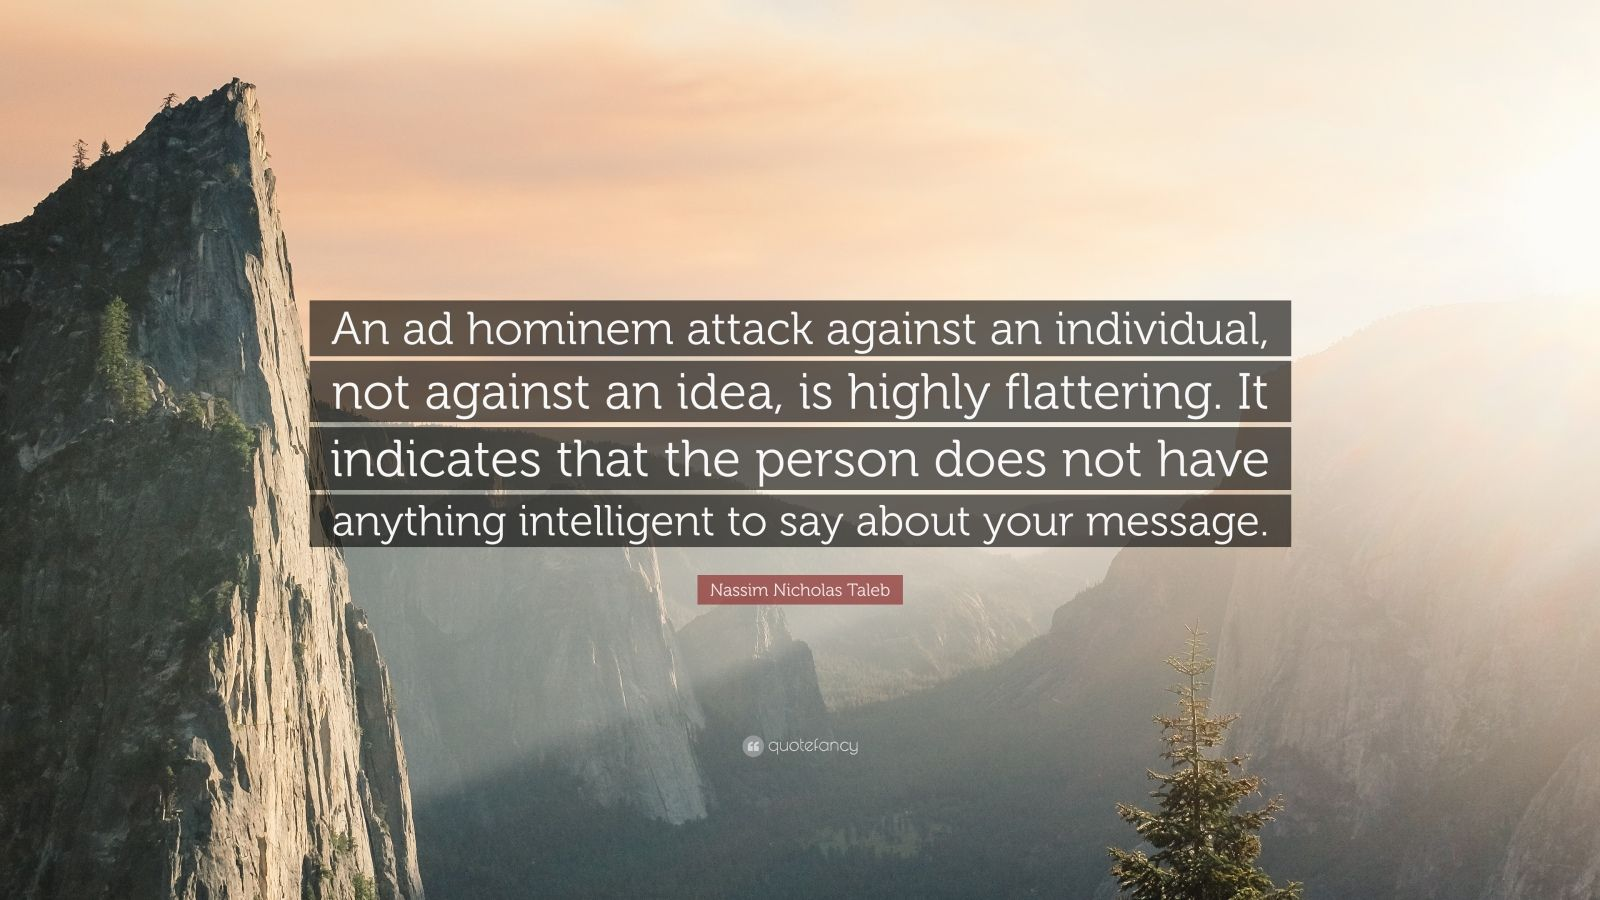 """Nassim Nicholas Taleb Quote: """"An ad hominem attack against an individual, not against an idea, is highly flattering. It indicates that the person does not have anything intelligent to say about your message."""""""